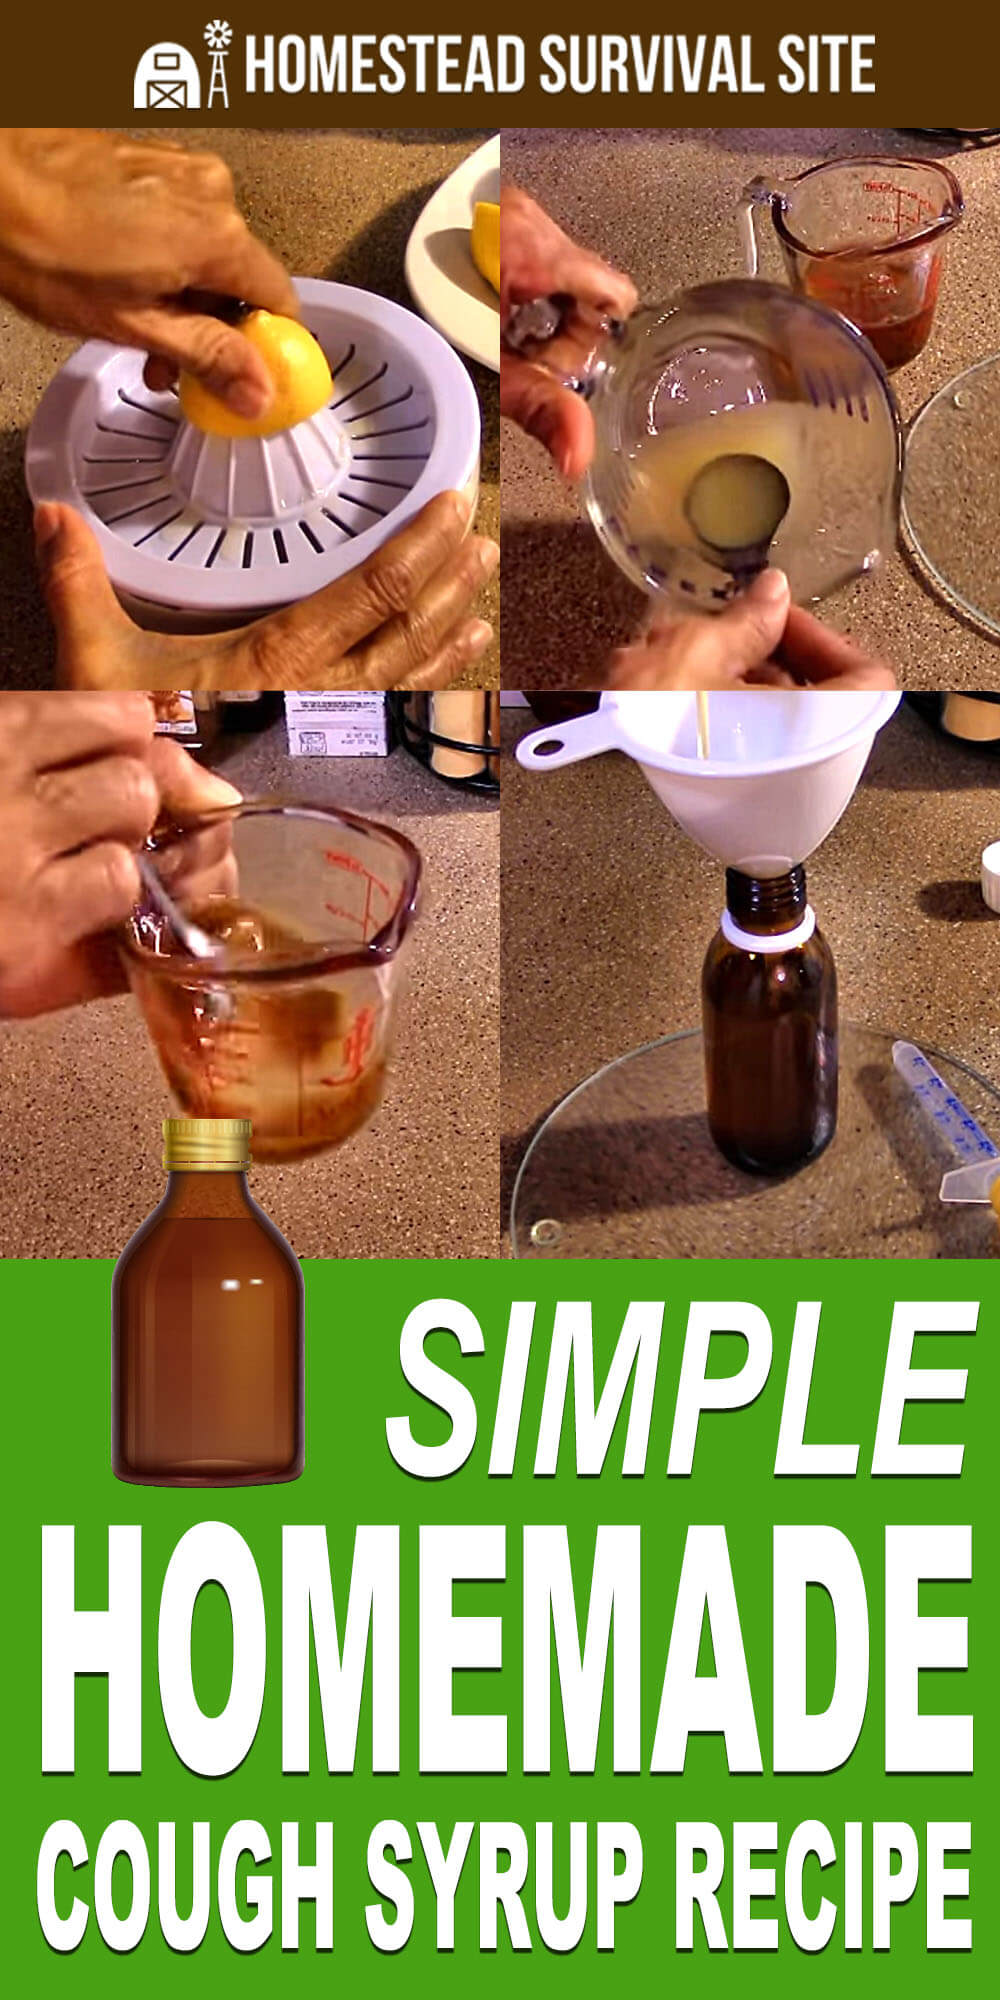 Simple Homemade Cough Syrup Recipe